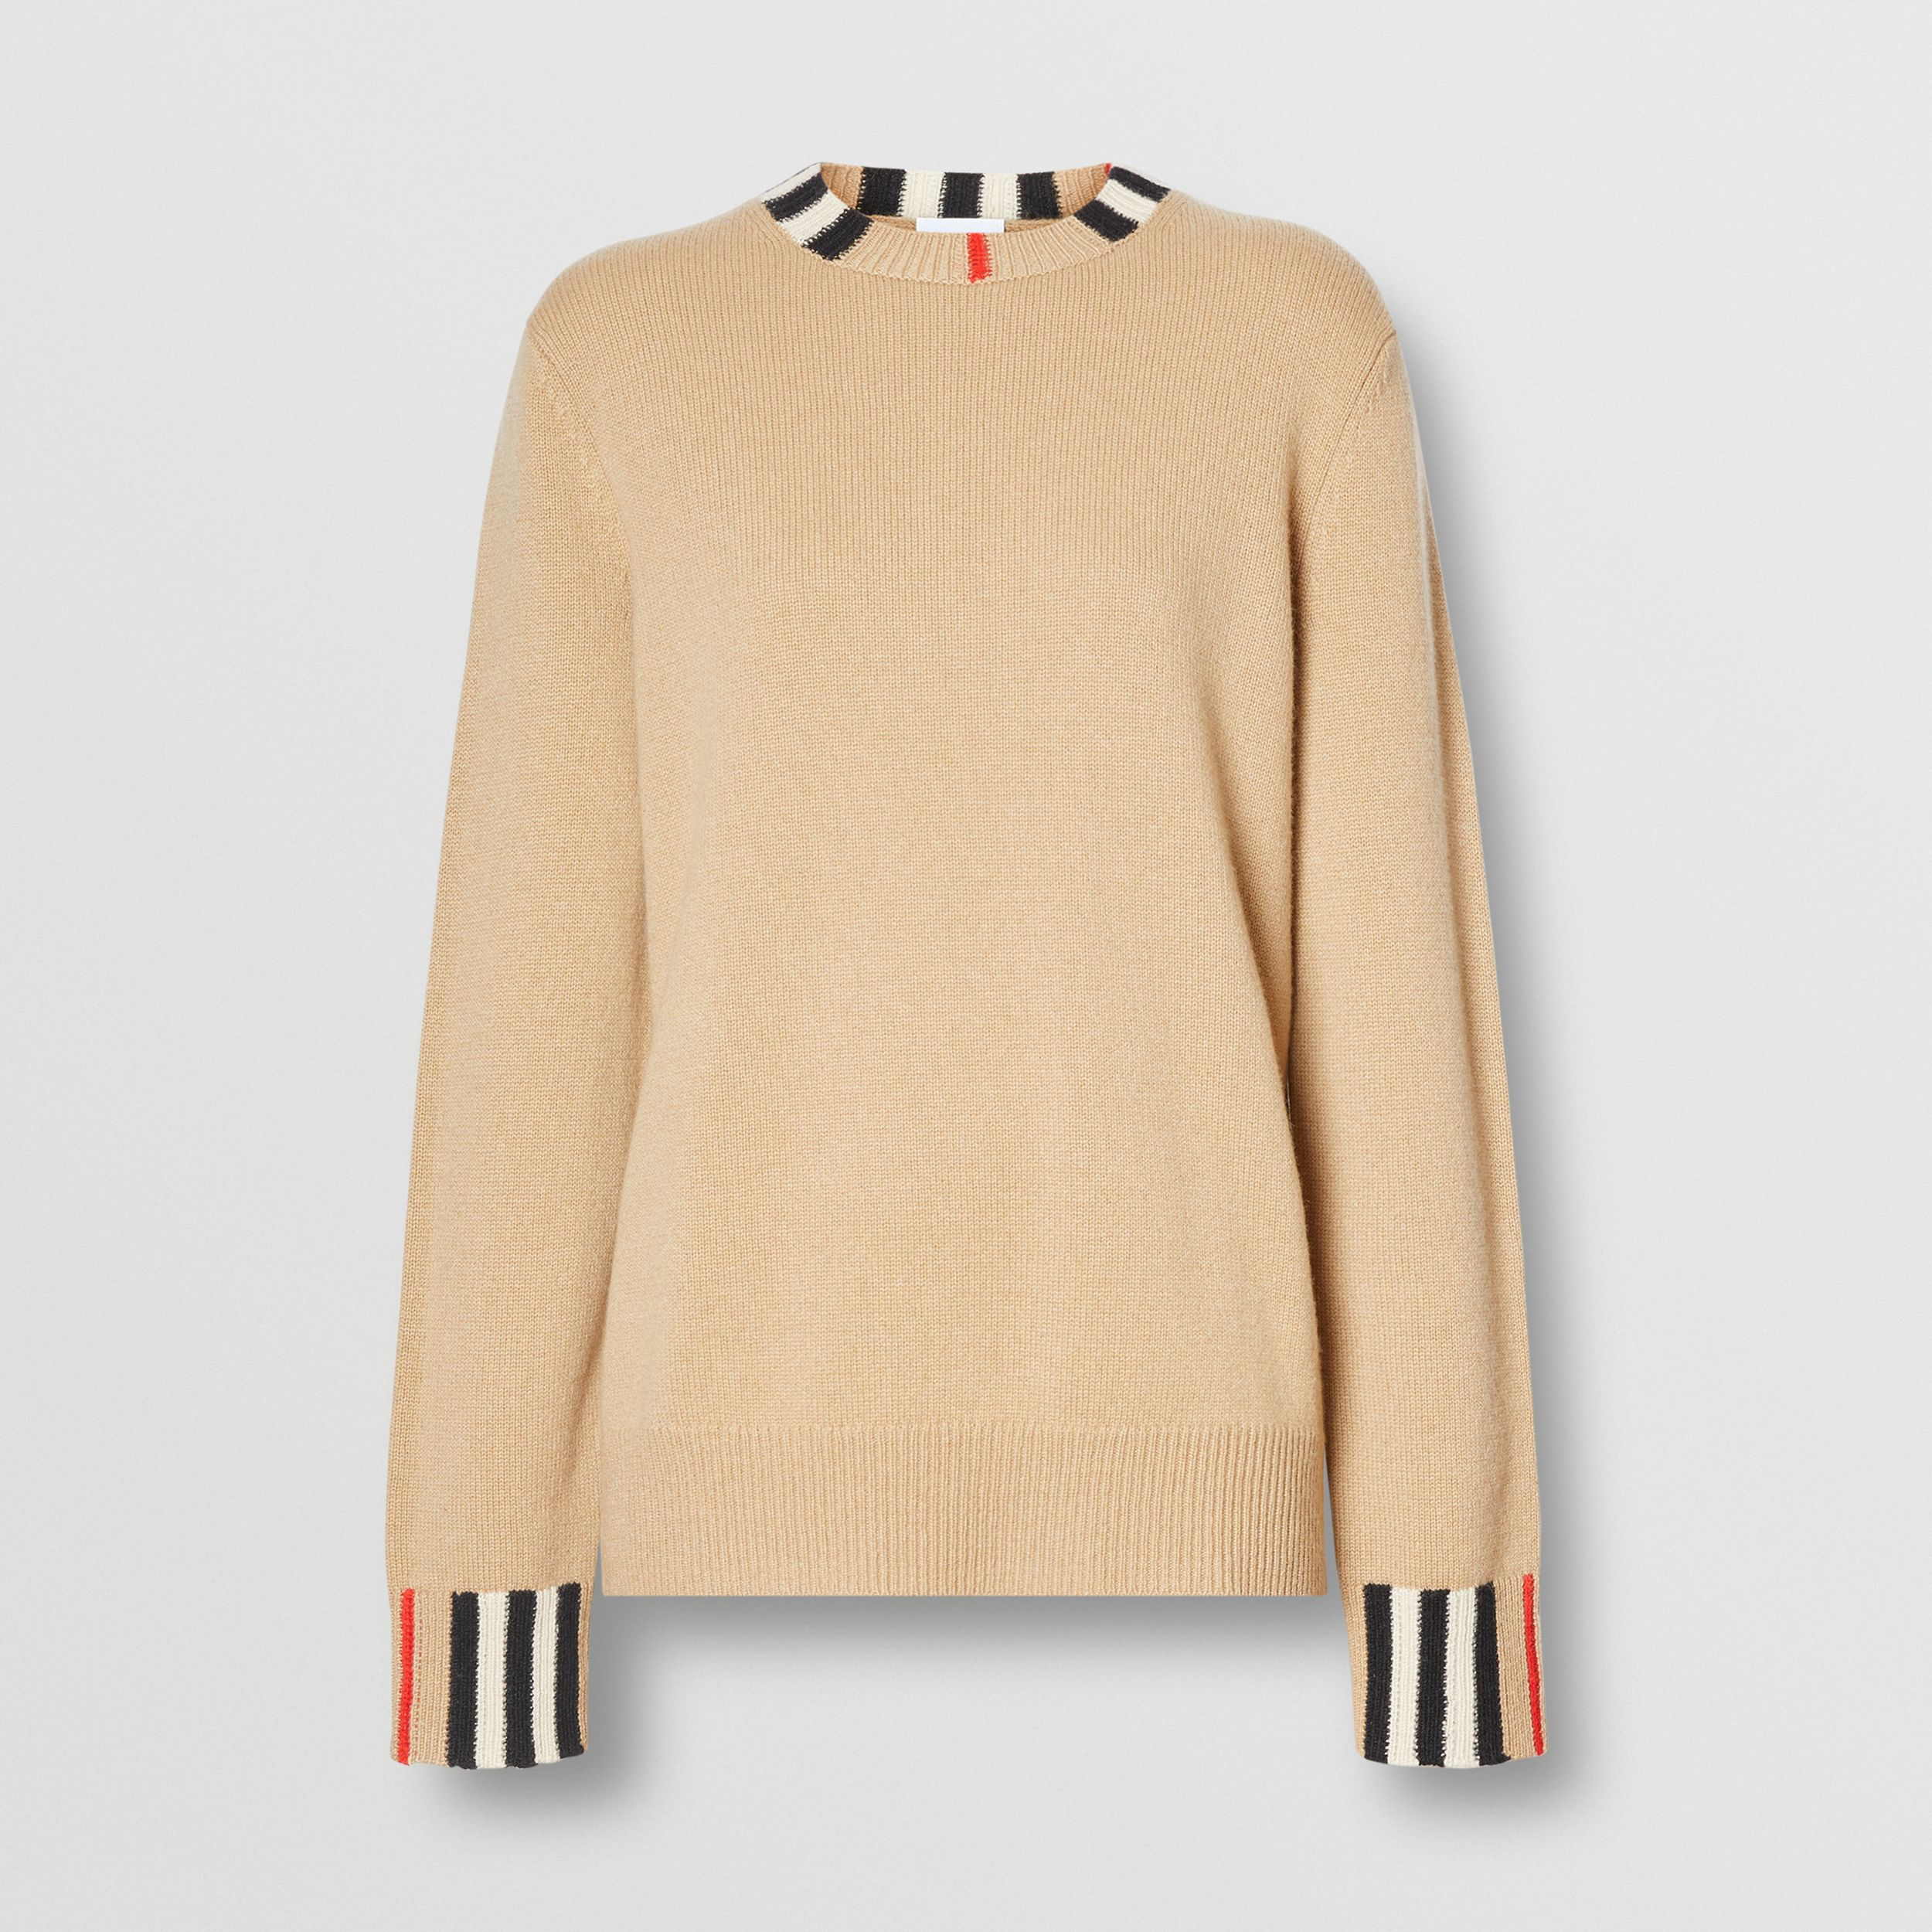 Icon Stripe Trim Cashmere Sweater in Archive Beige - Women | Burberry Canada - 4